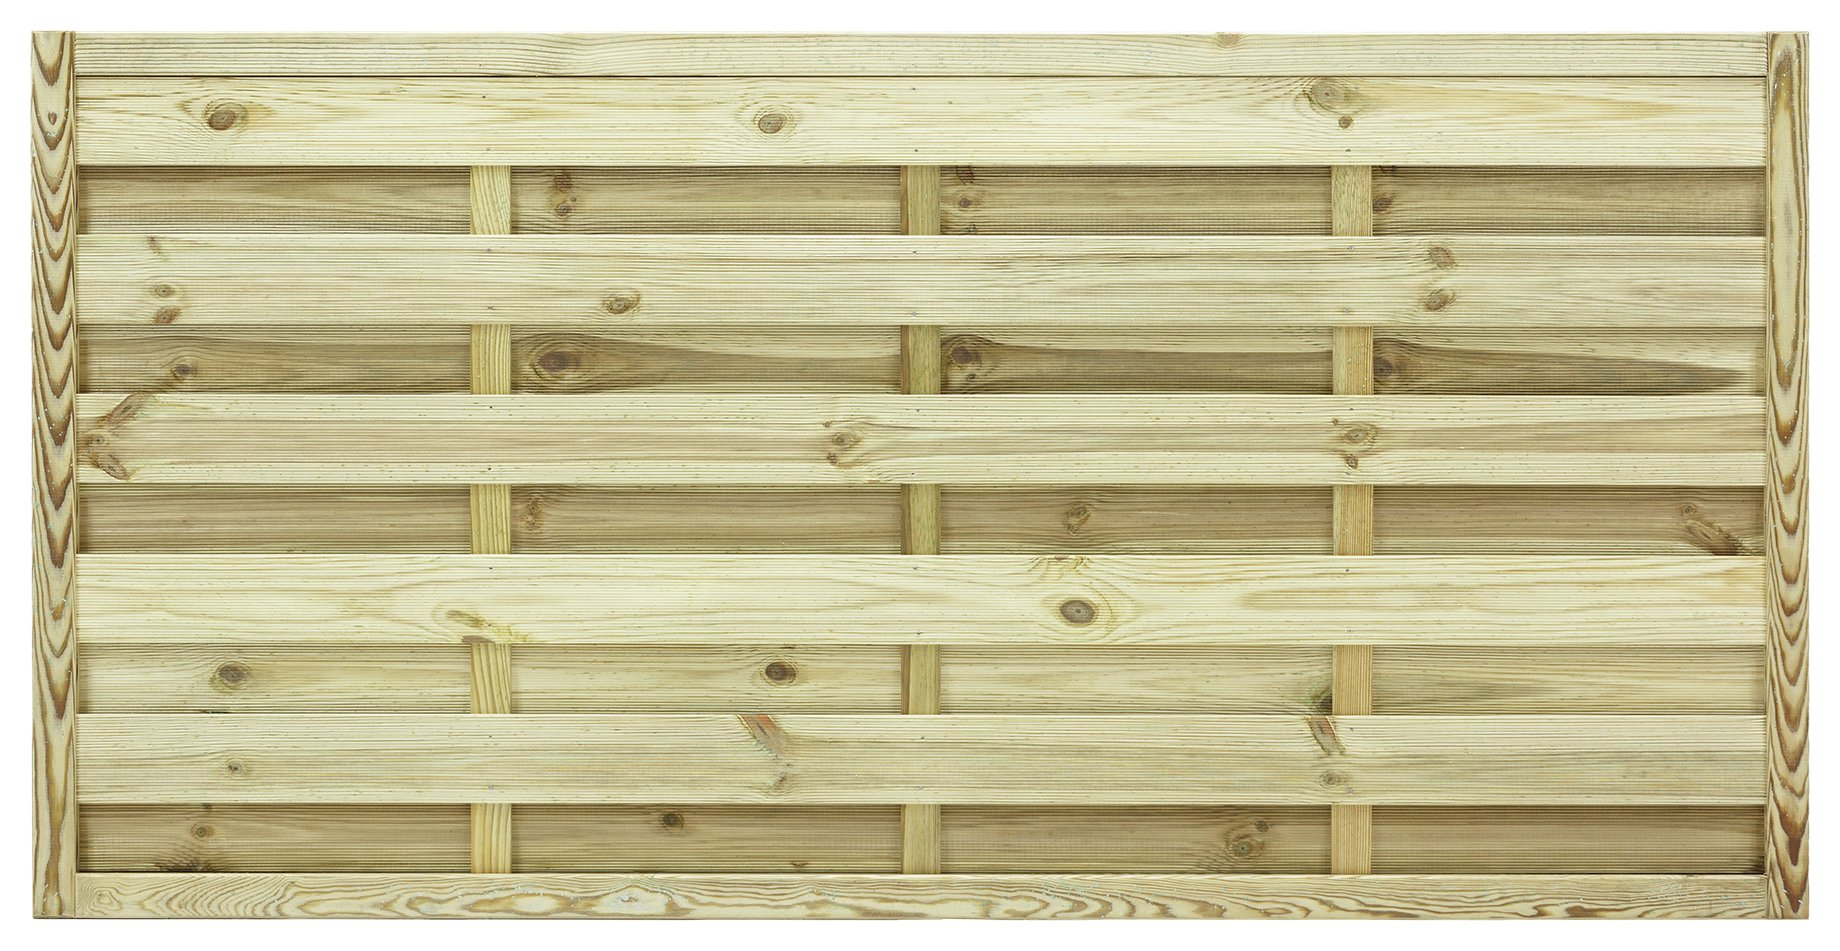 Image of Grange 0.9m St Espirit Square Fence Panel - Pack of 4.